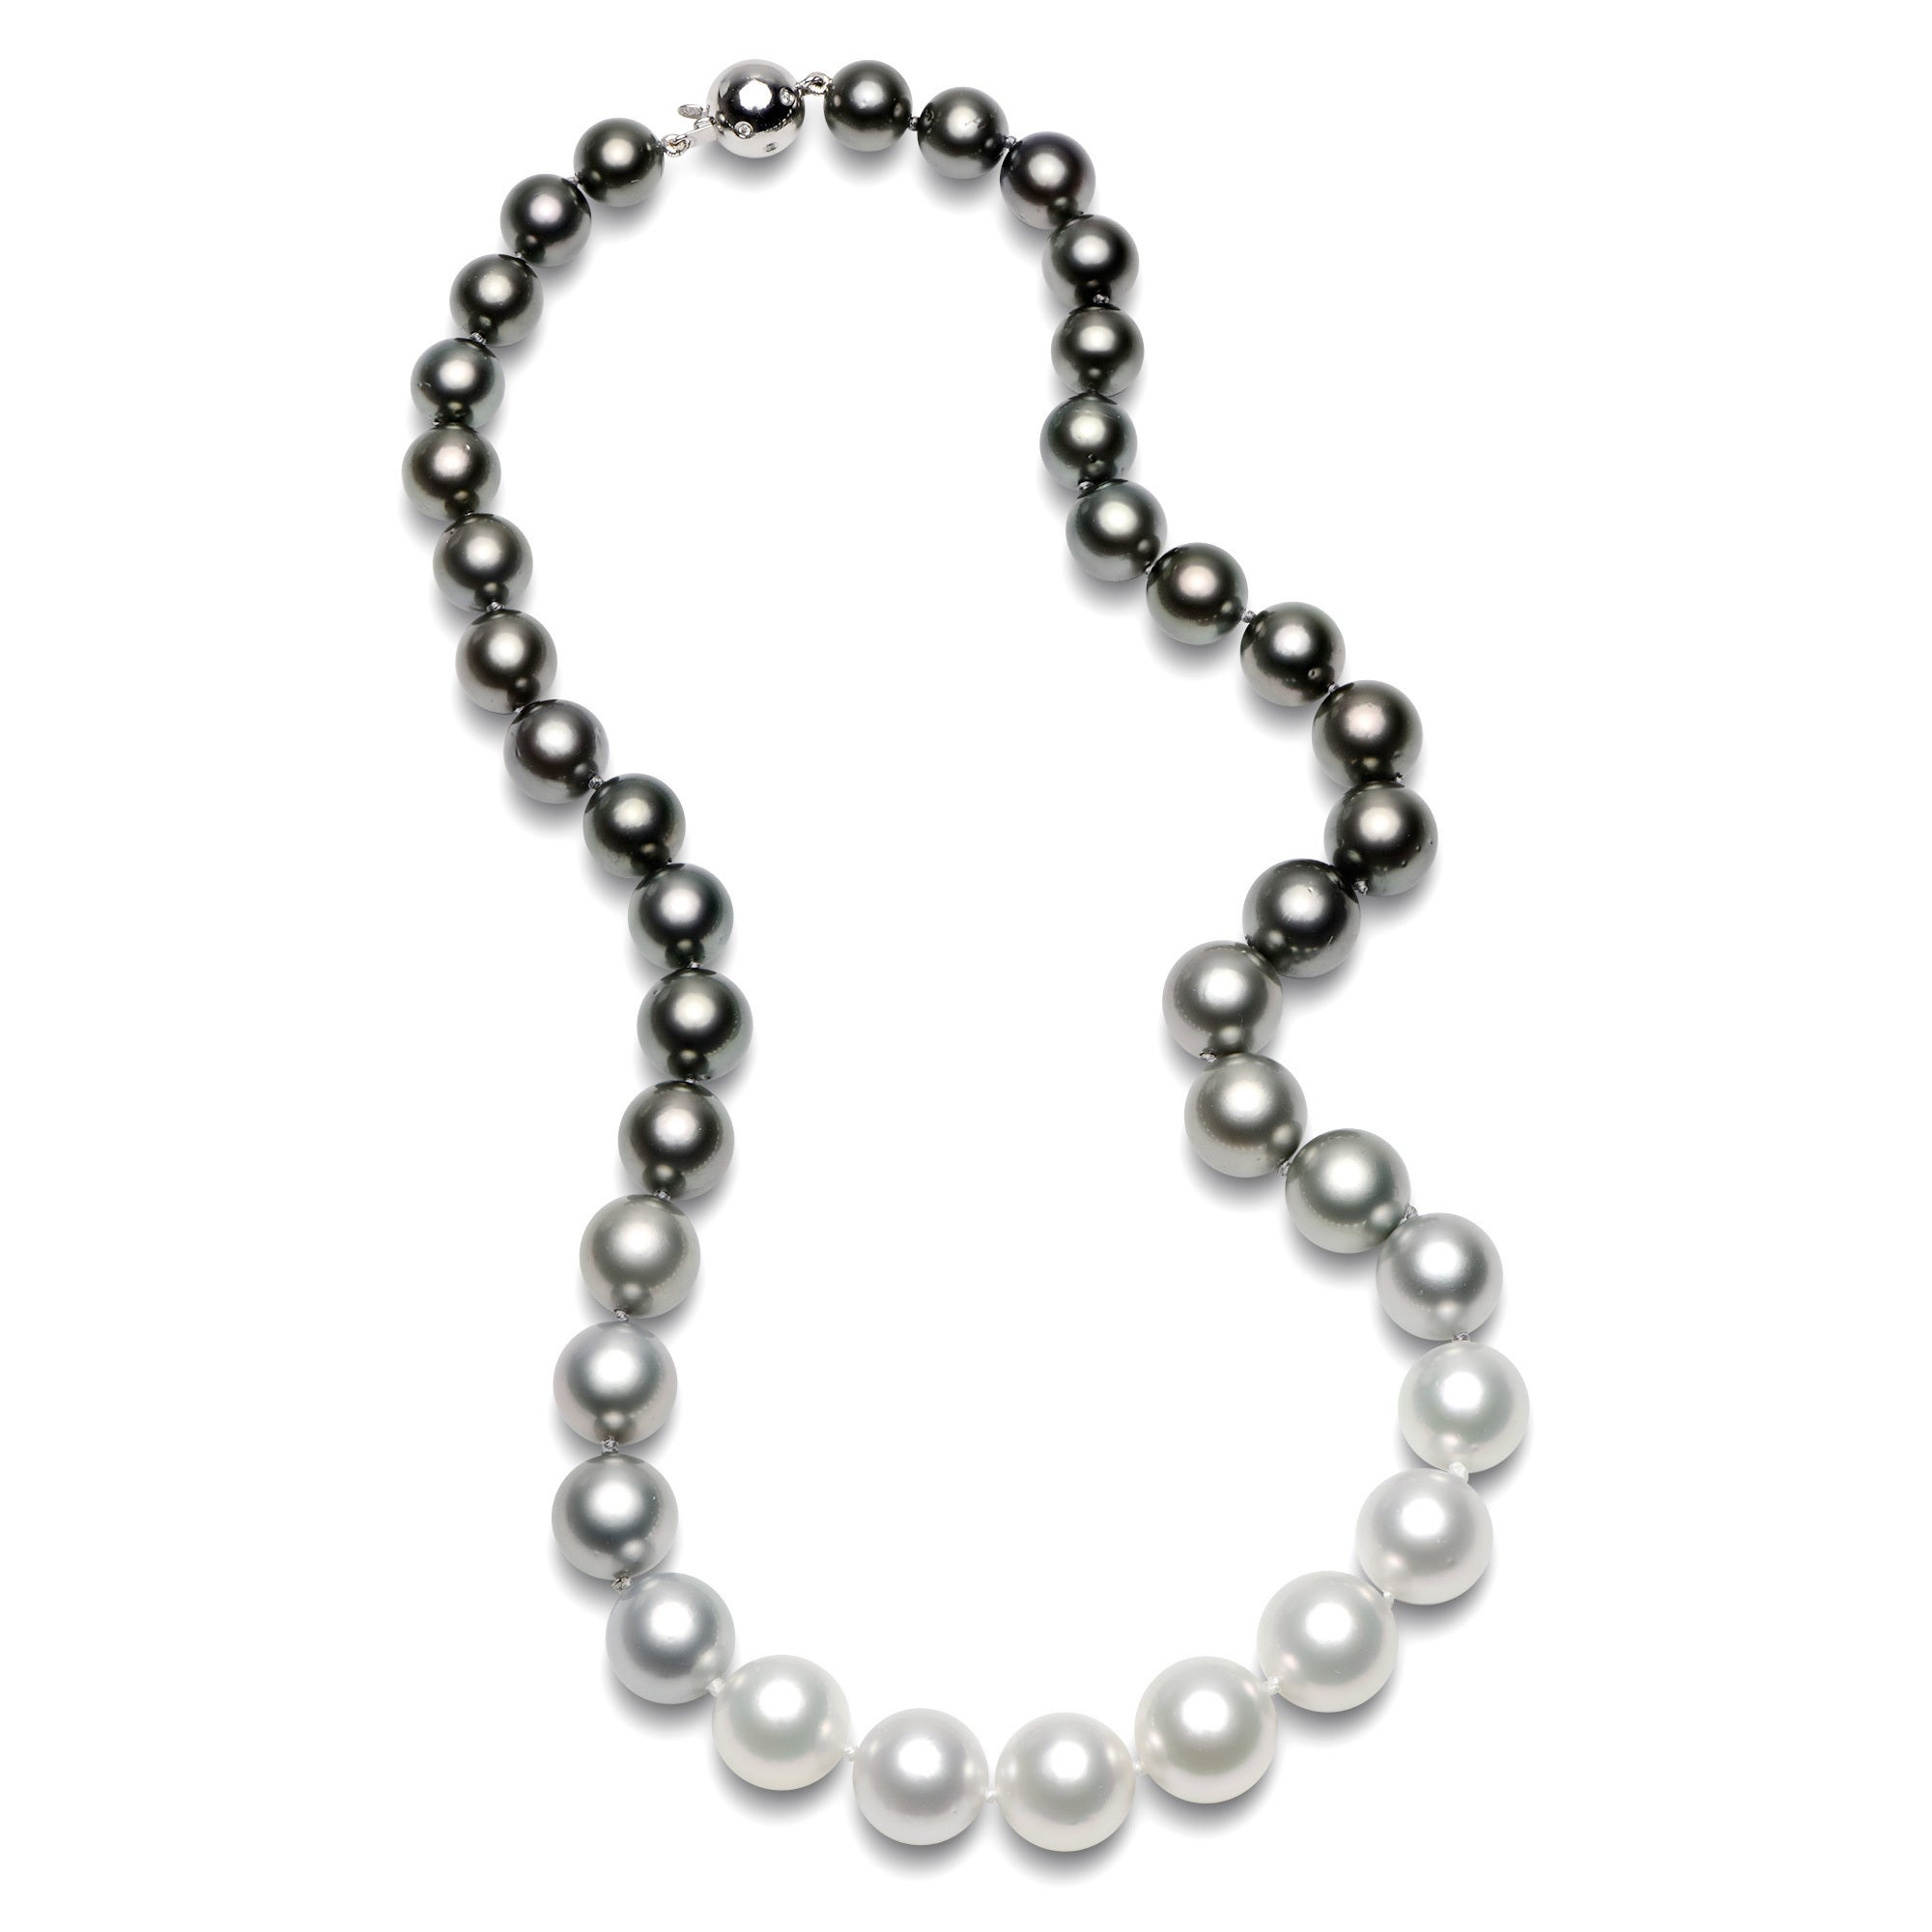 tin collections house products jewellery on necklaces necklace silver sterling cup pearl pearls up close dog